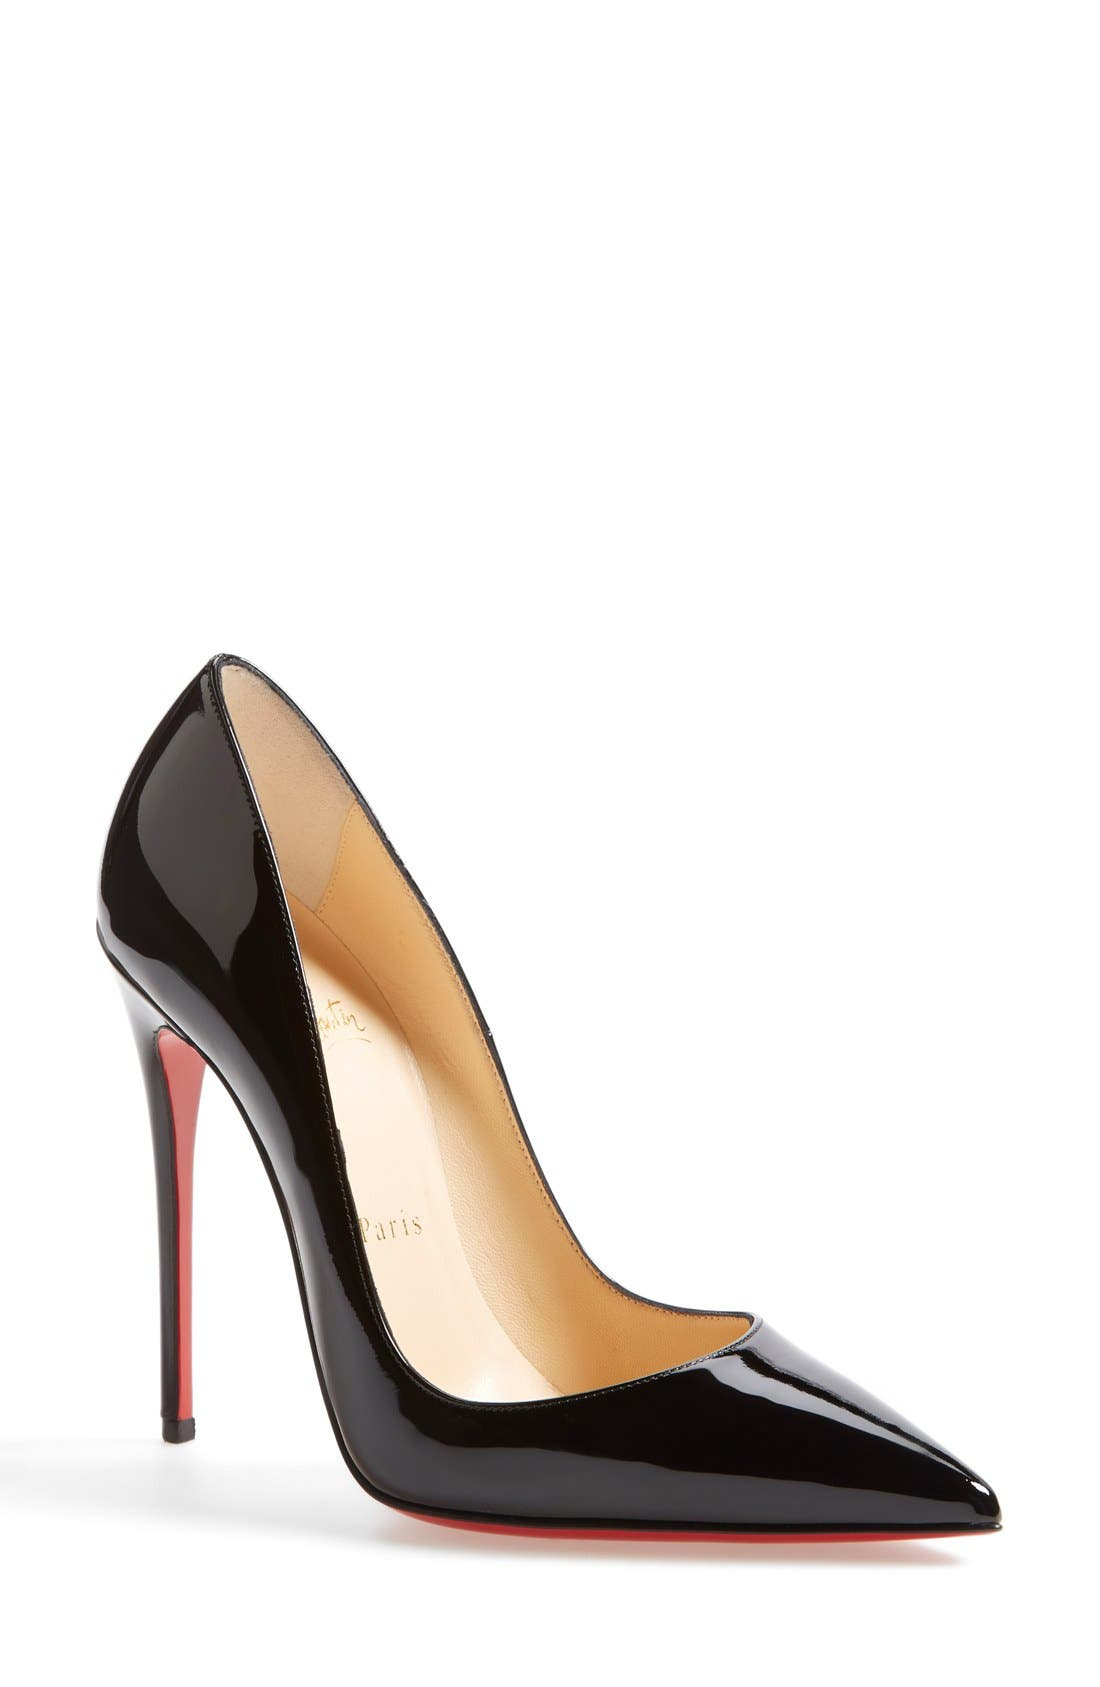 christian louboutin women s shoes nordstrom rh shop nordstrom com louboutin shoes price list louboutin shoes price in usa